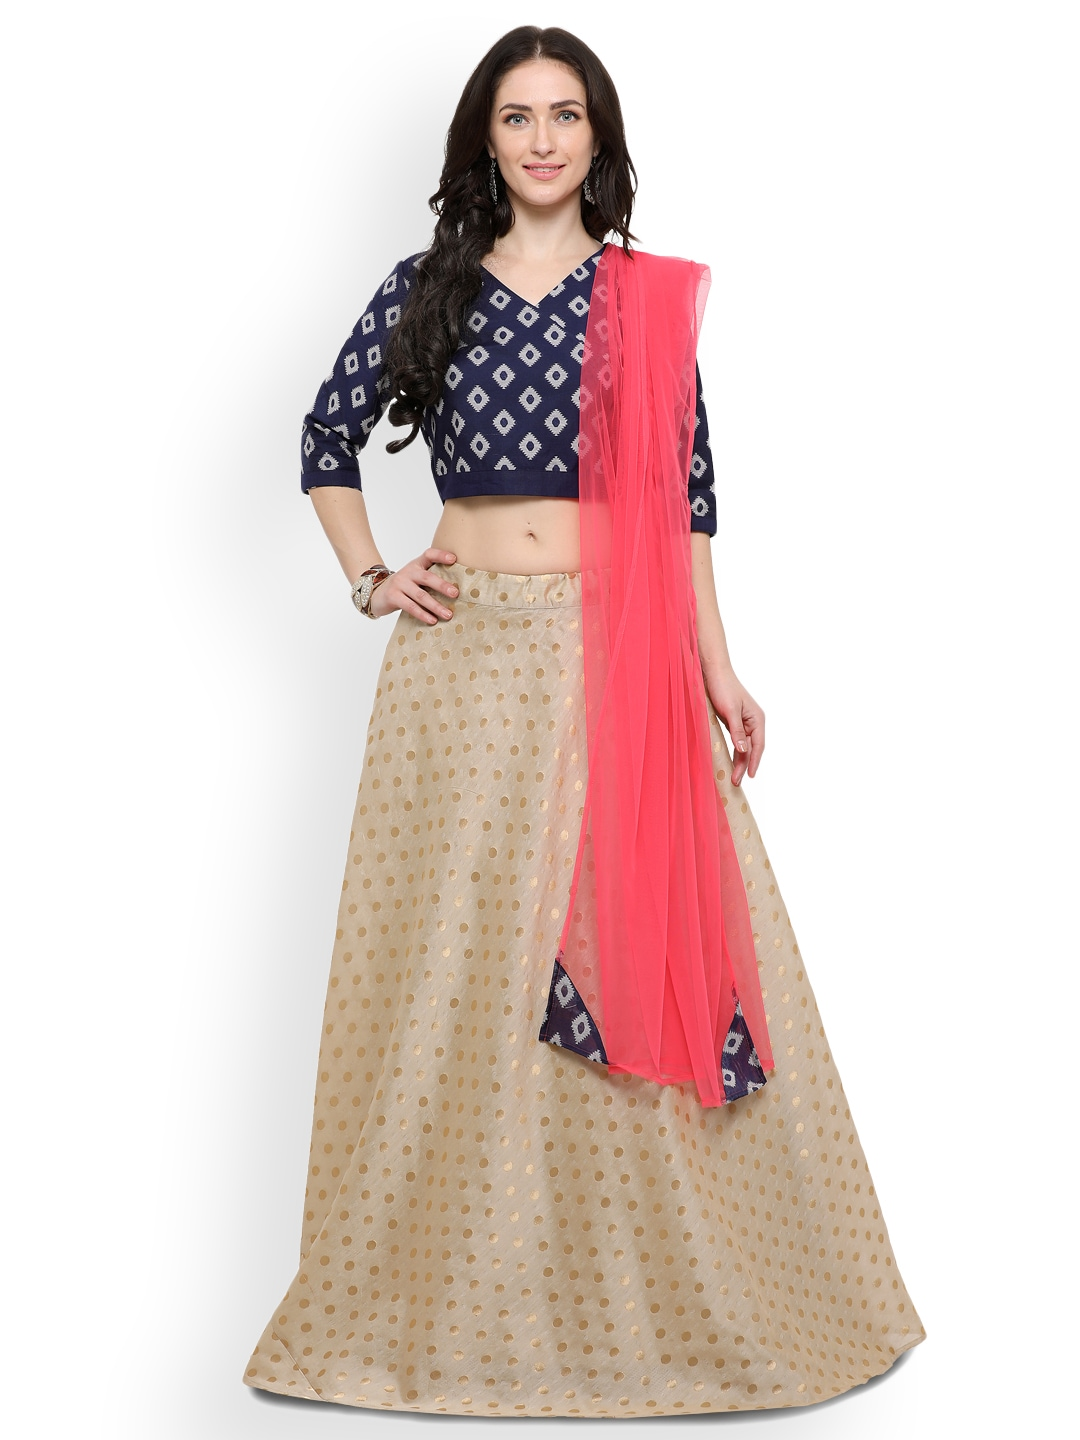 Inddus Beige & Blue Woven Design Semi-Stitched Lehenga & Unstitched Blouse With Dupatta image